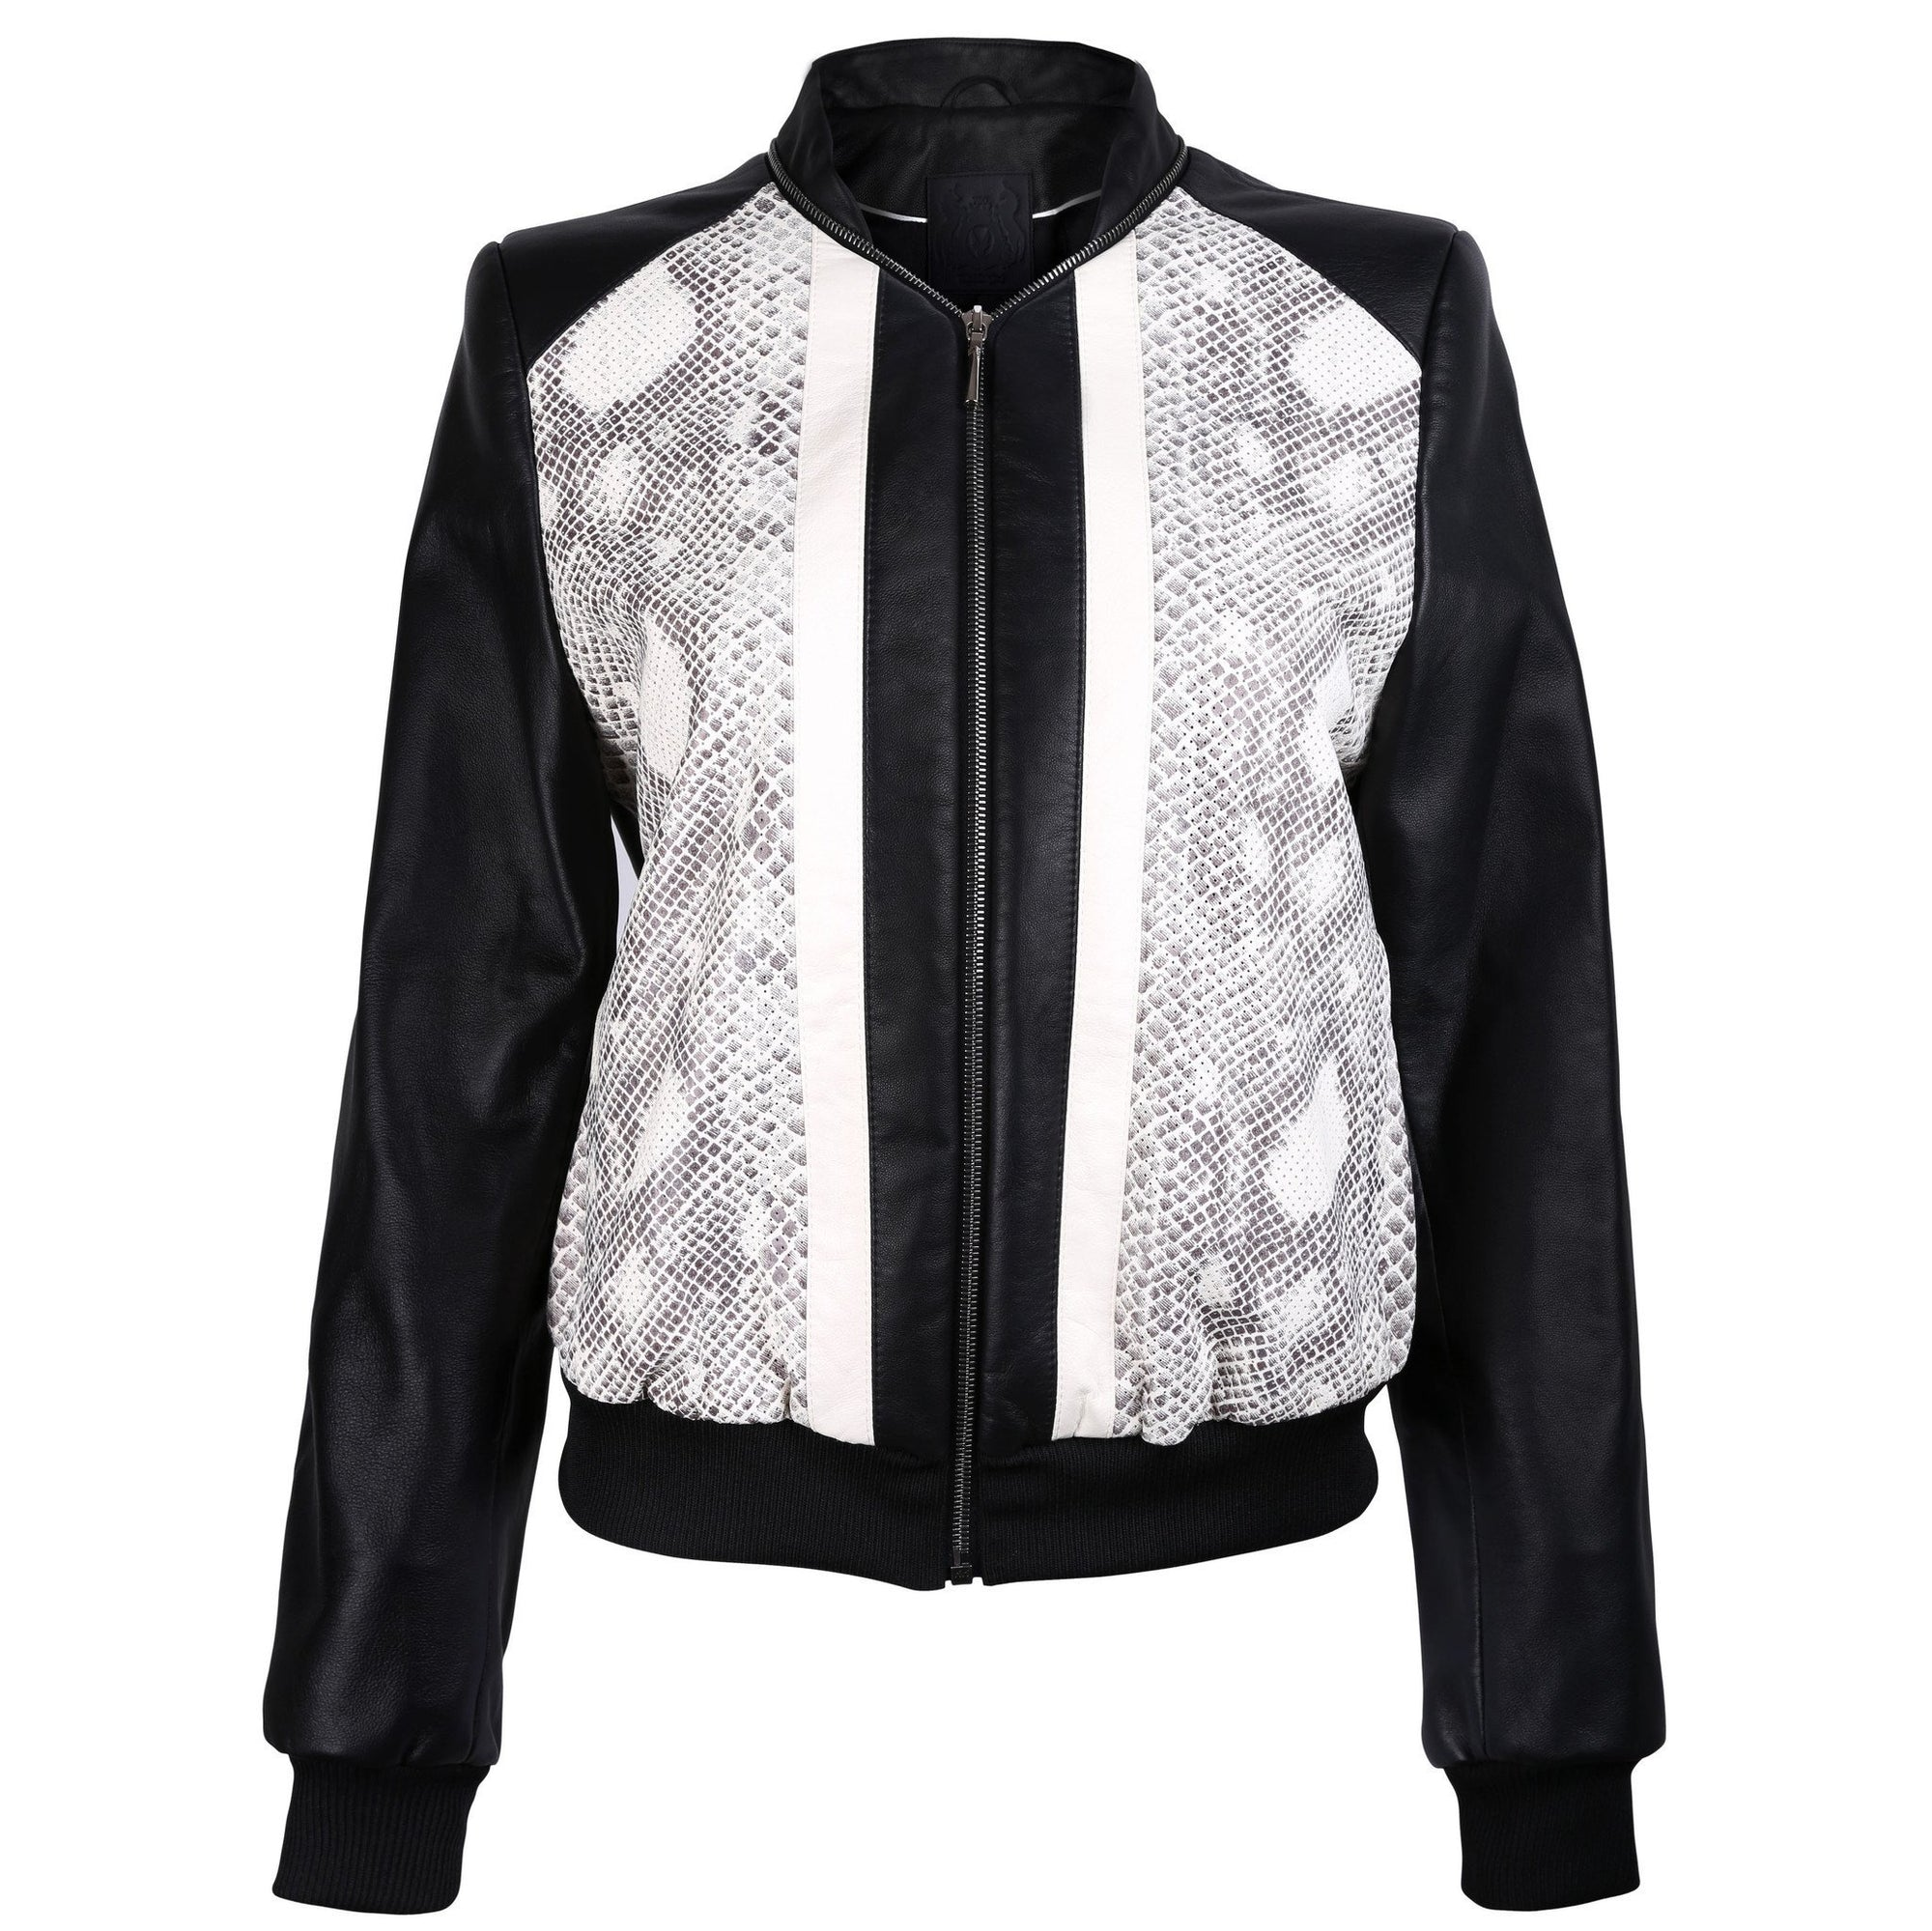 Black Leather Bomber Jacket with Snake Print - VOLS & ORIGINAL